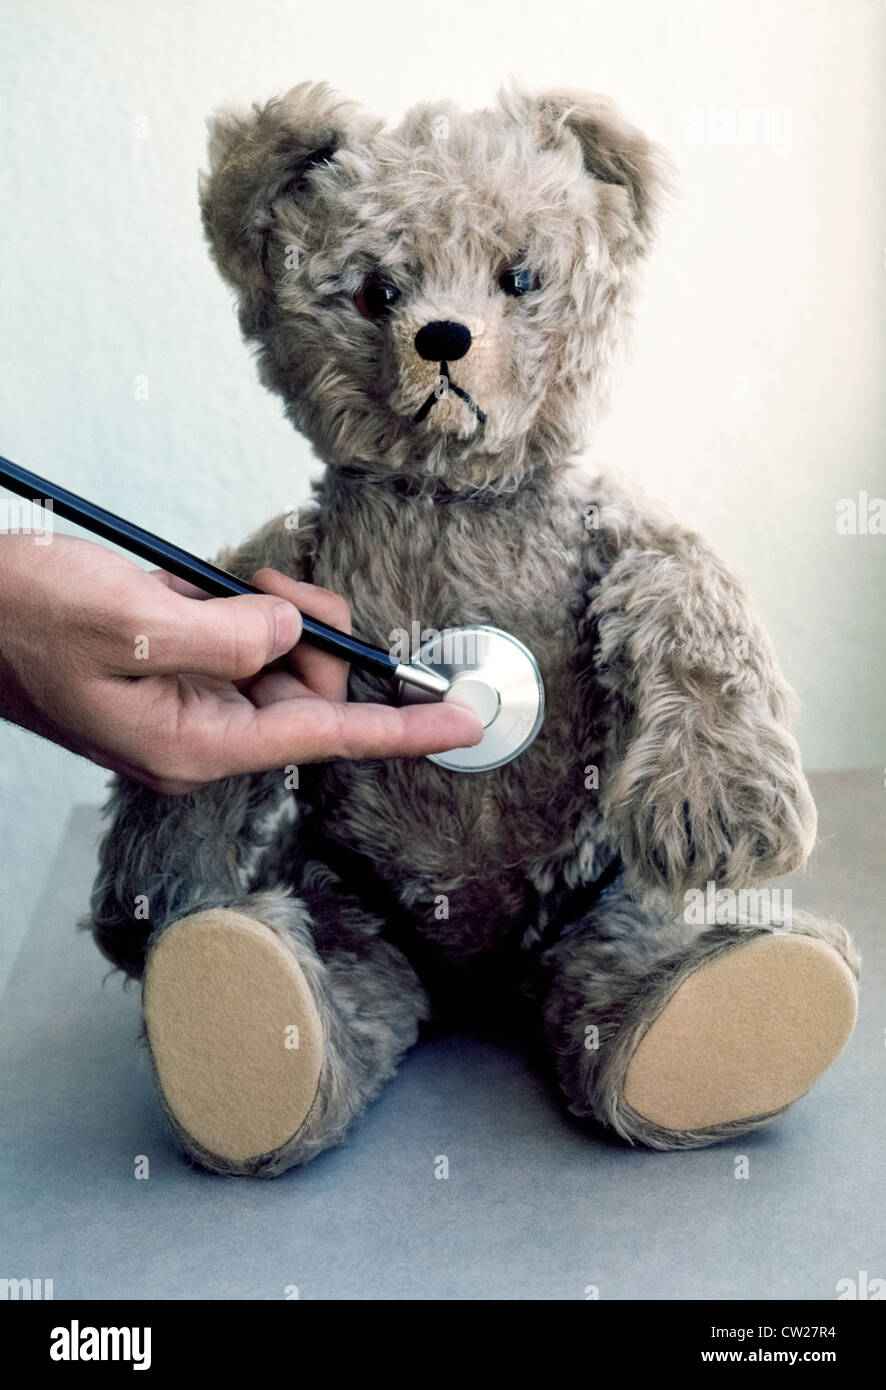 A medical stethoscope is used to check a toy Teddy Bear's heartbeat  to teach young children not to be afraid - Stock Image